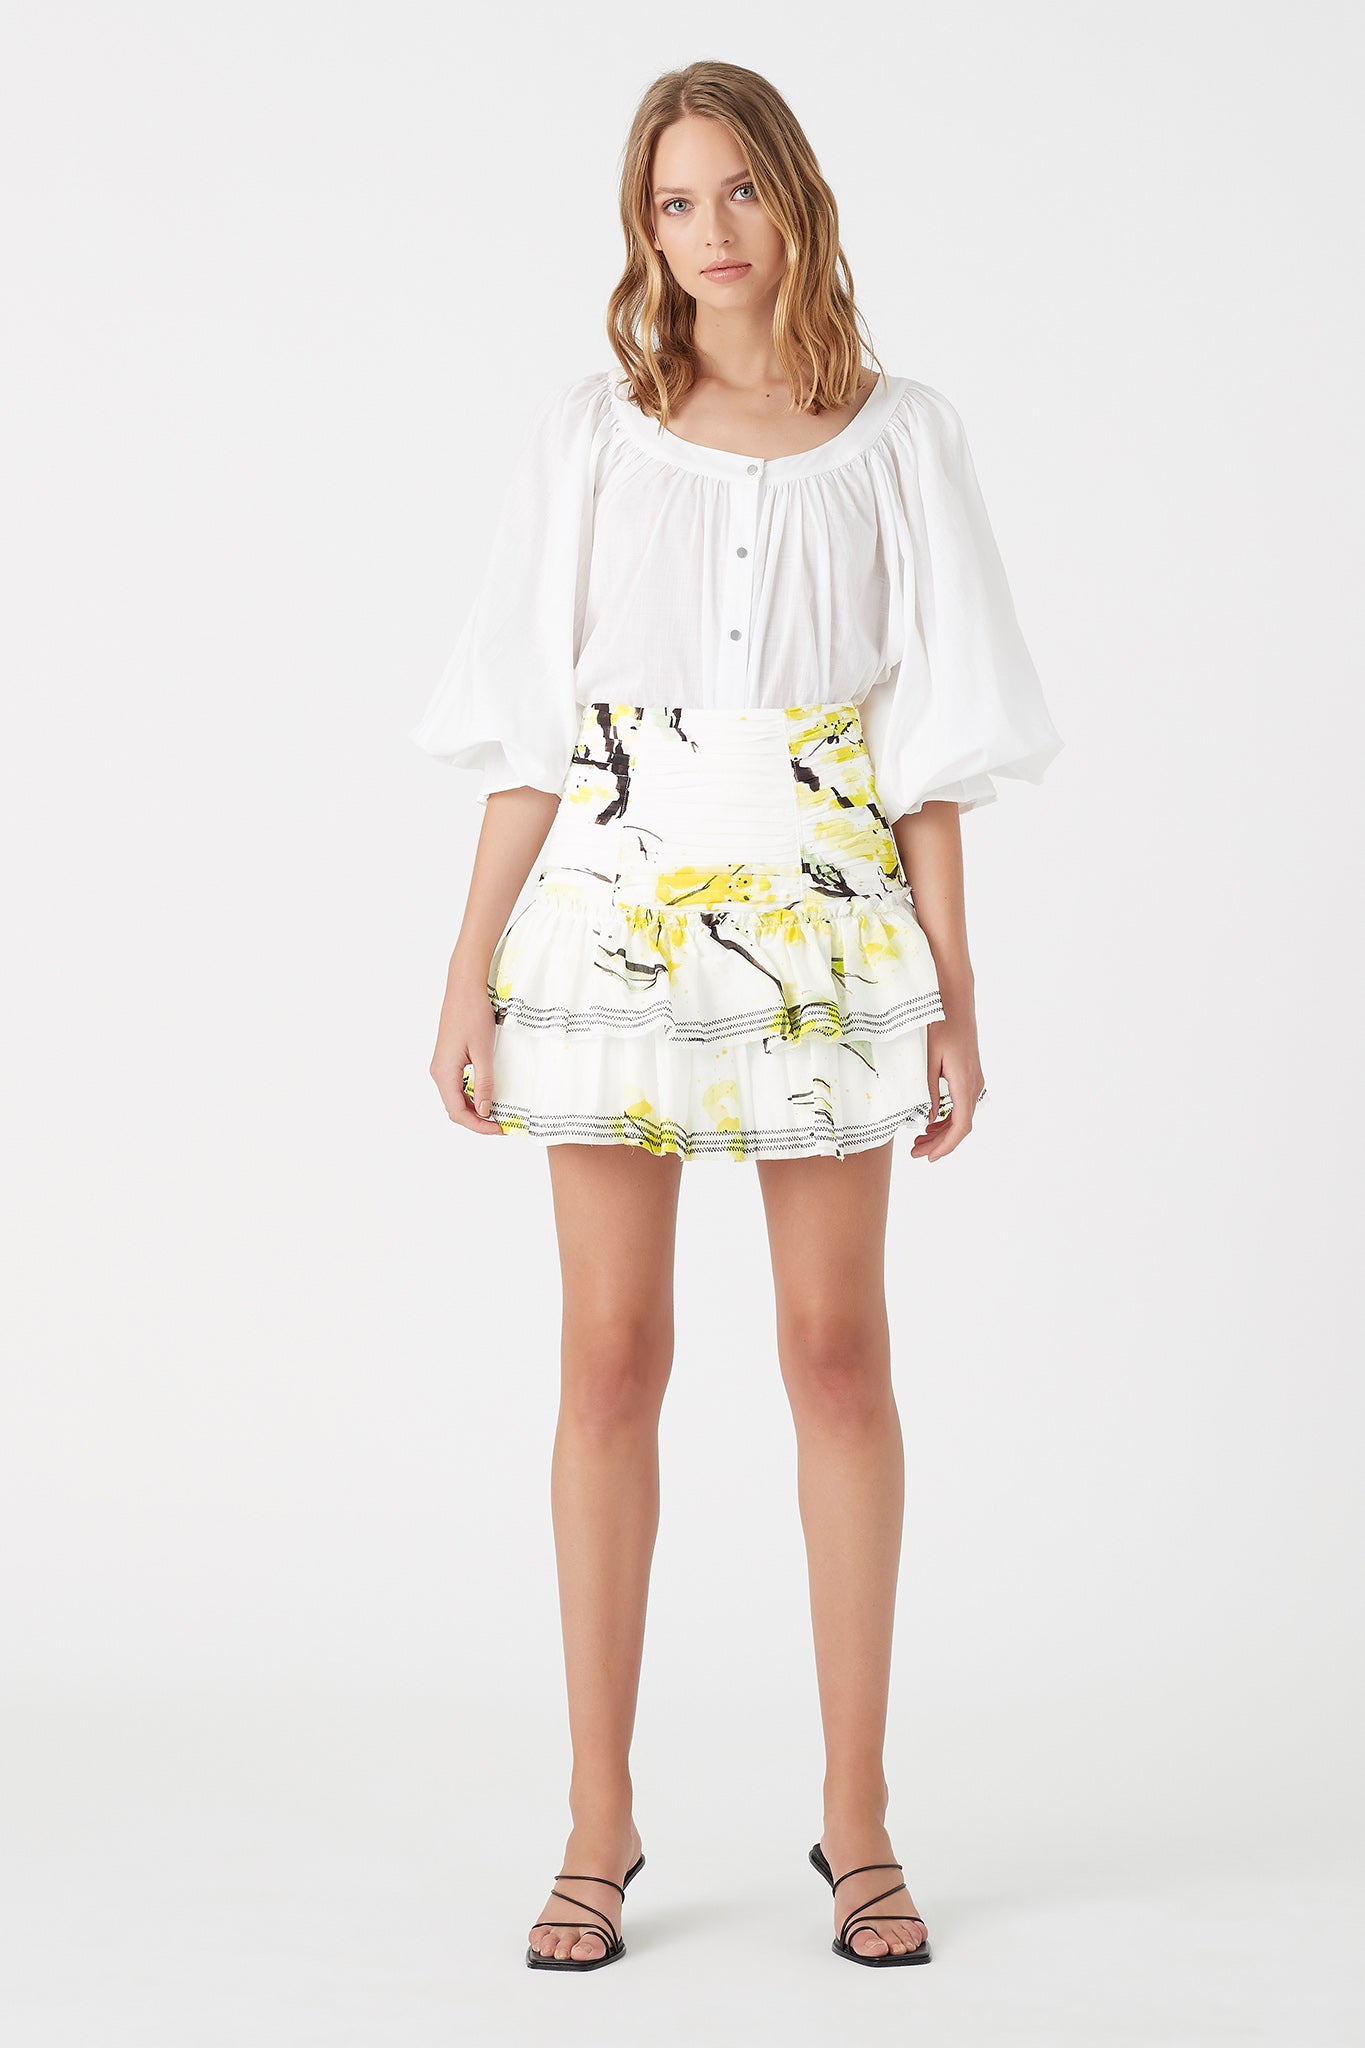 Mimosa Frill Mini Skirt Outfit View